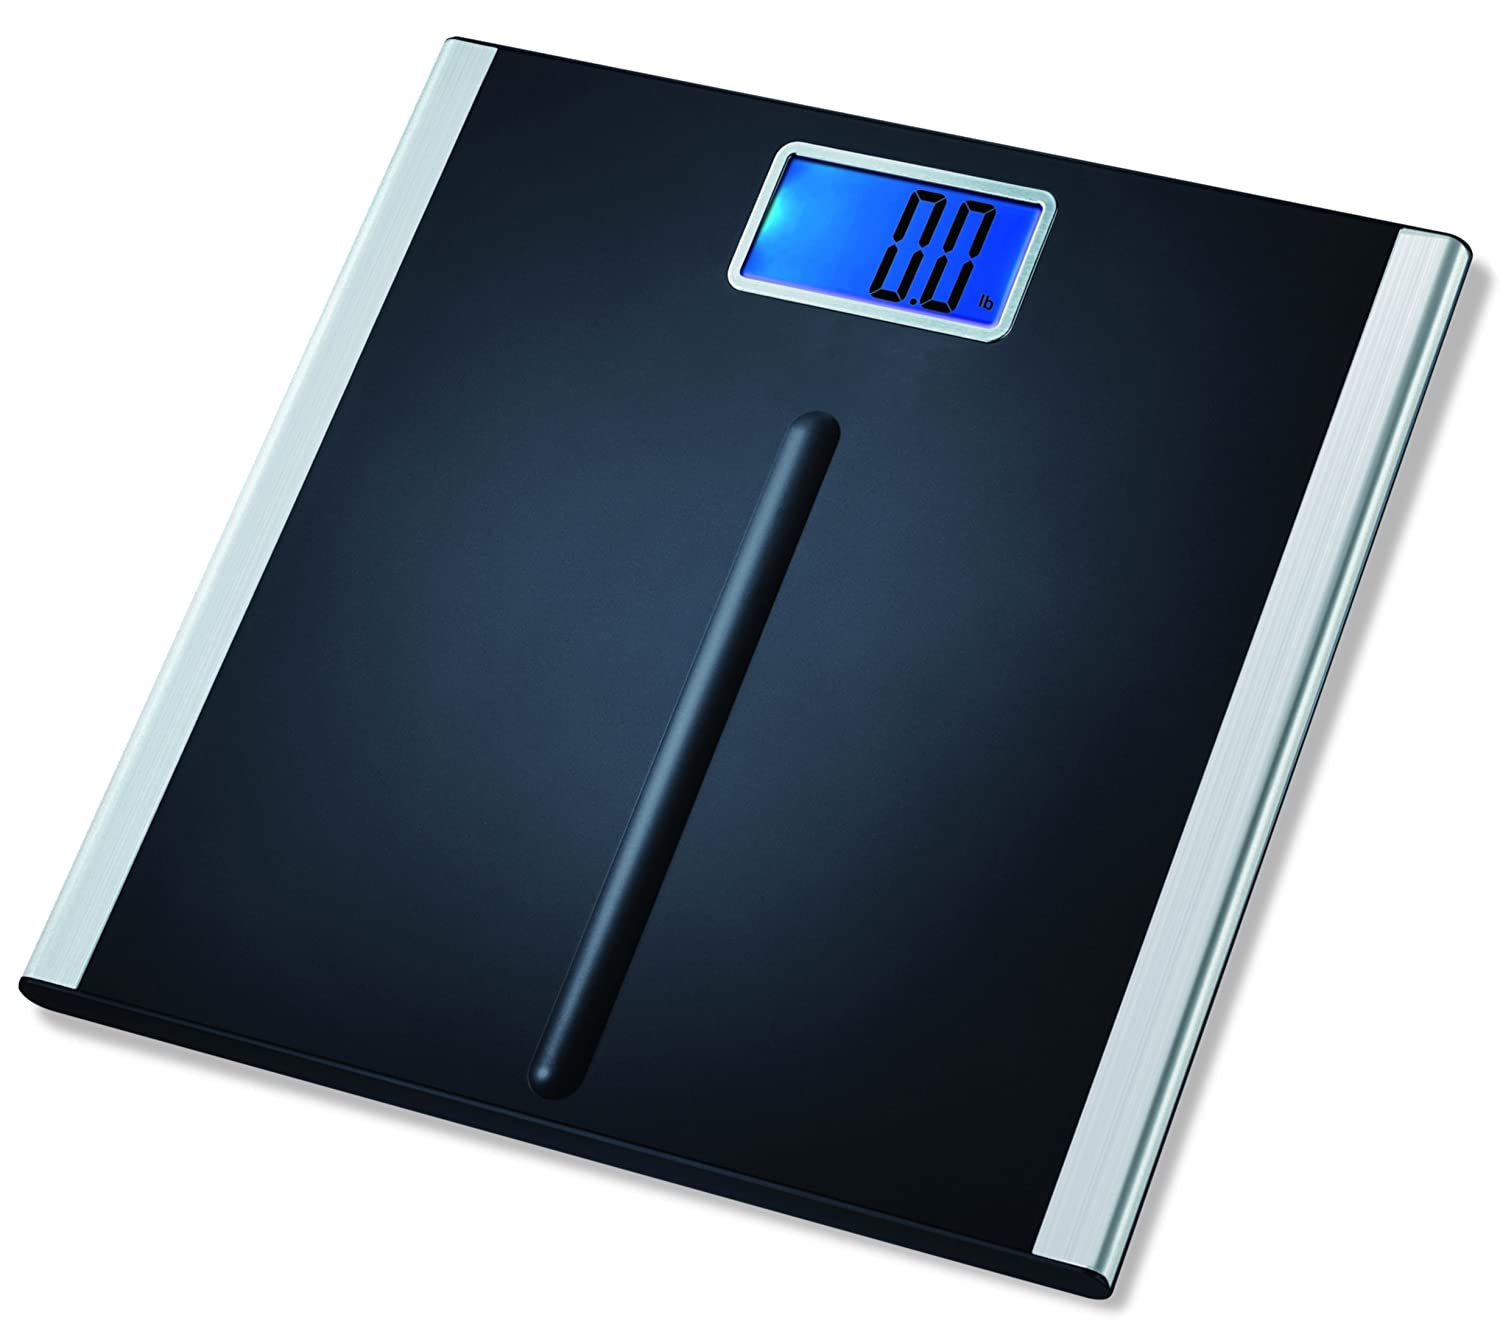 Eatsmart precision digital bathroom scale review - Amazon Com Eatsmart Precision Premium Digital Bathroom Scale With 3 5 Lcd And Step On Technology Health Personal Care